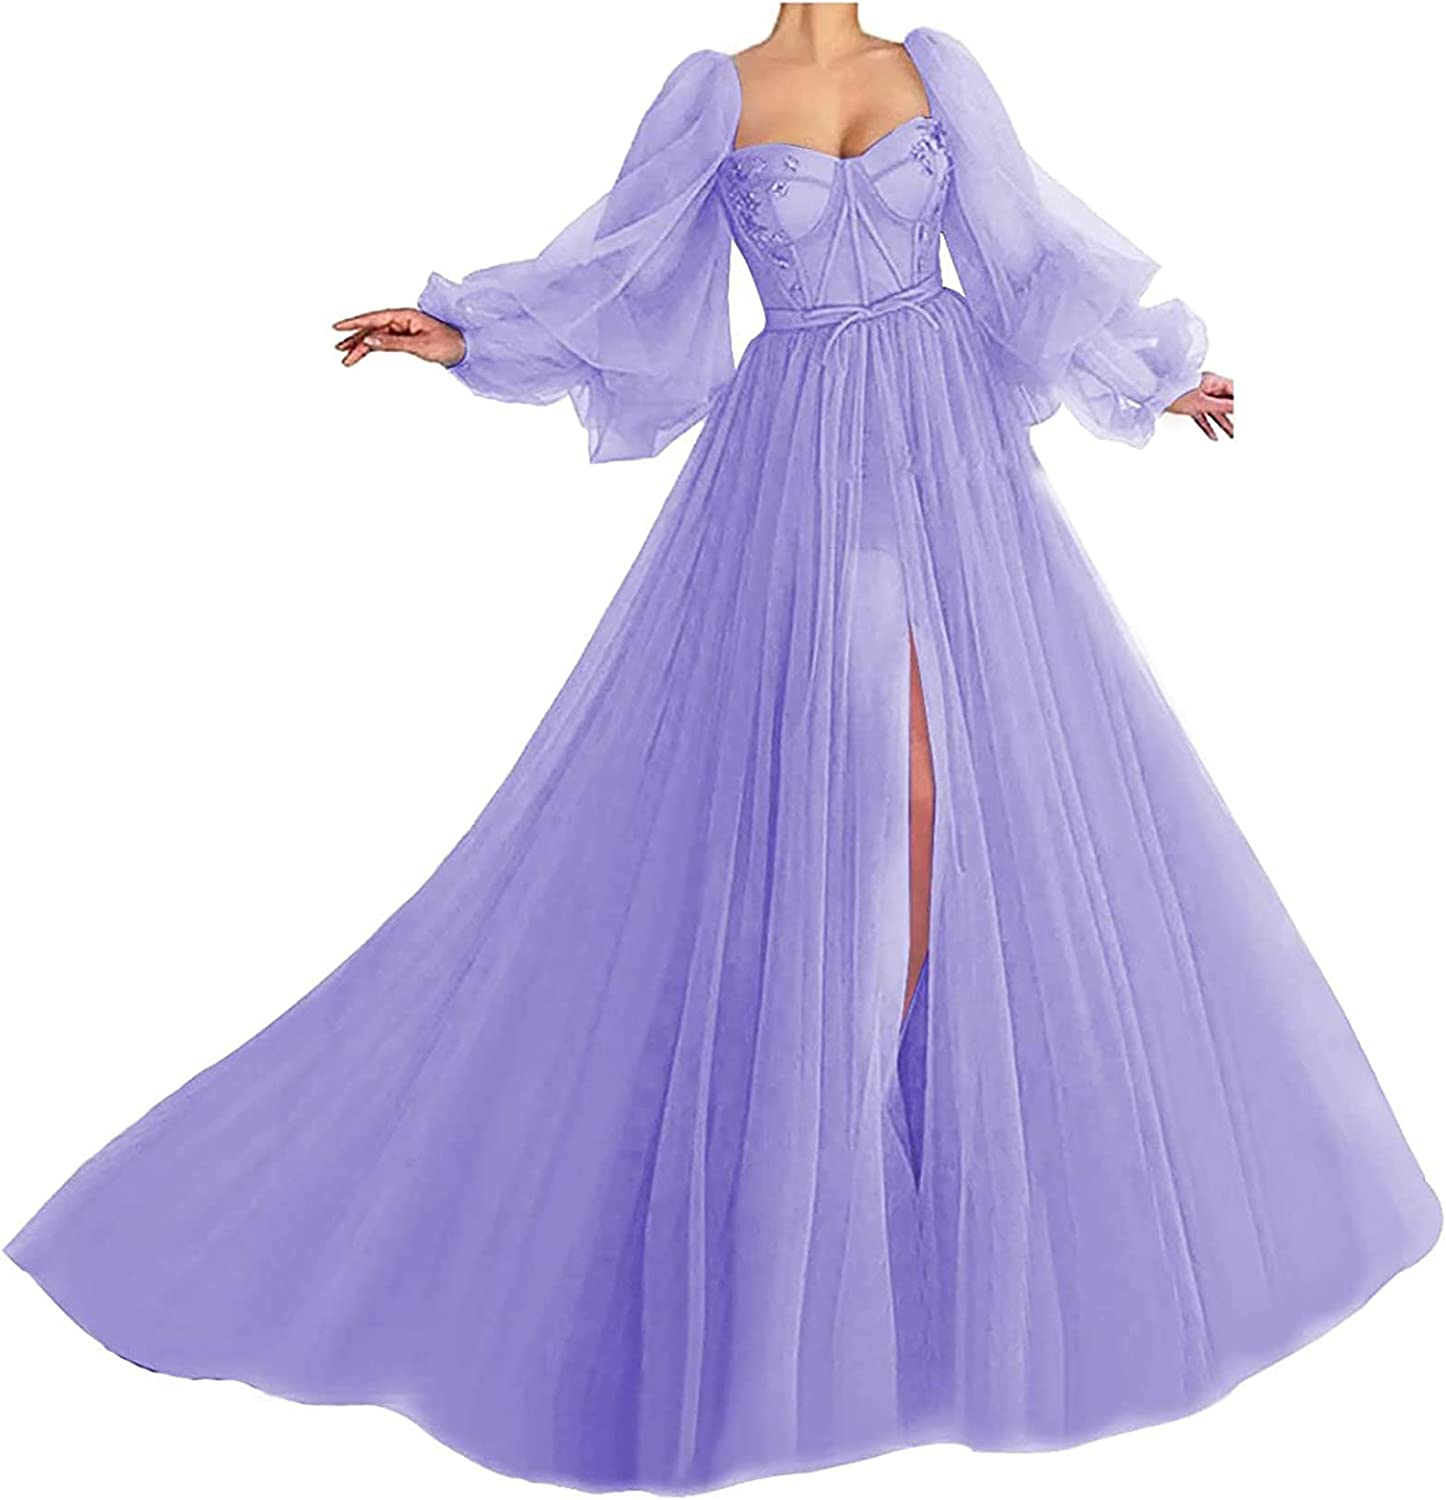 Tianzhihe Women's Vintage Prom Dress Long Puffy Sleeve Tulle Evening Gown Formal Bridal Dresses for Wedding